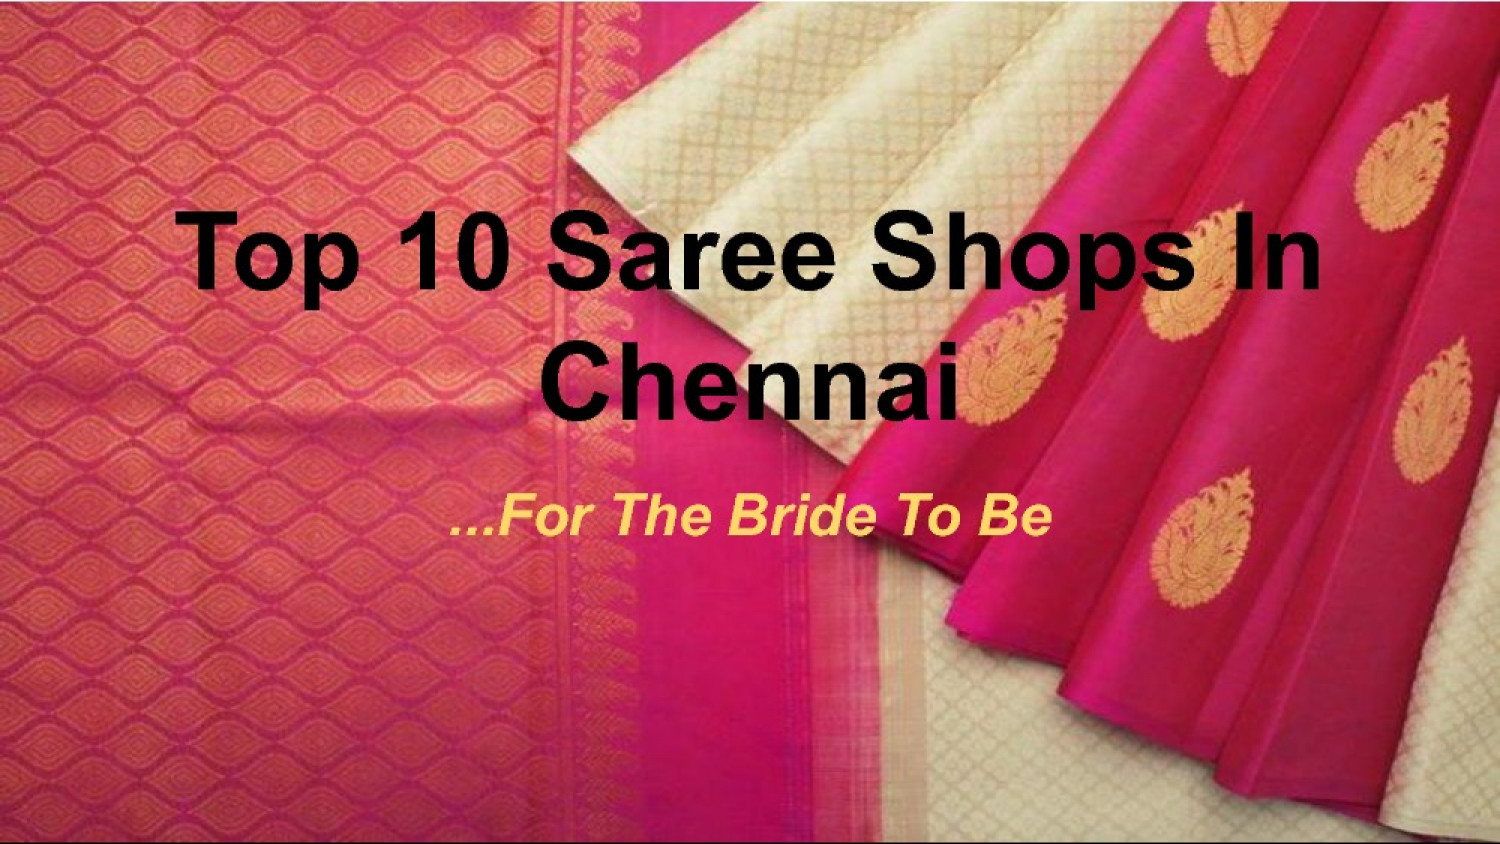 Top 10 Saree Shops In Chennai Infographic